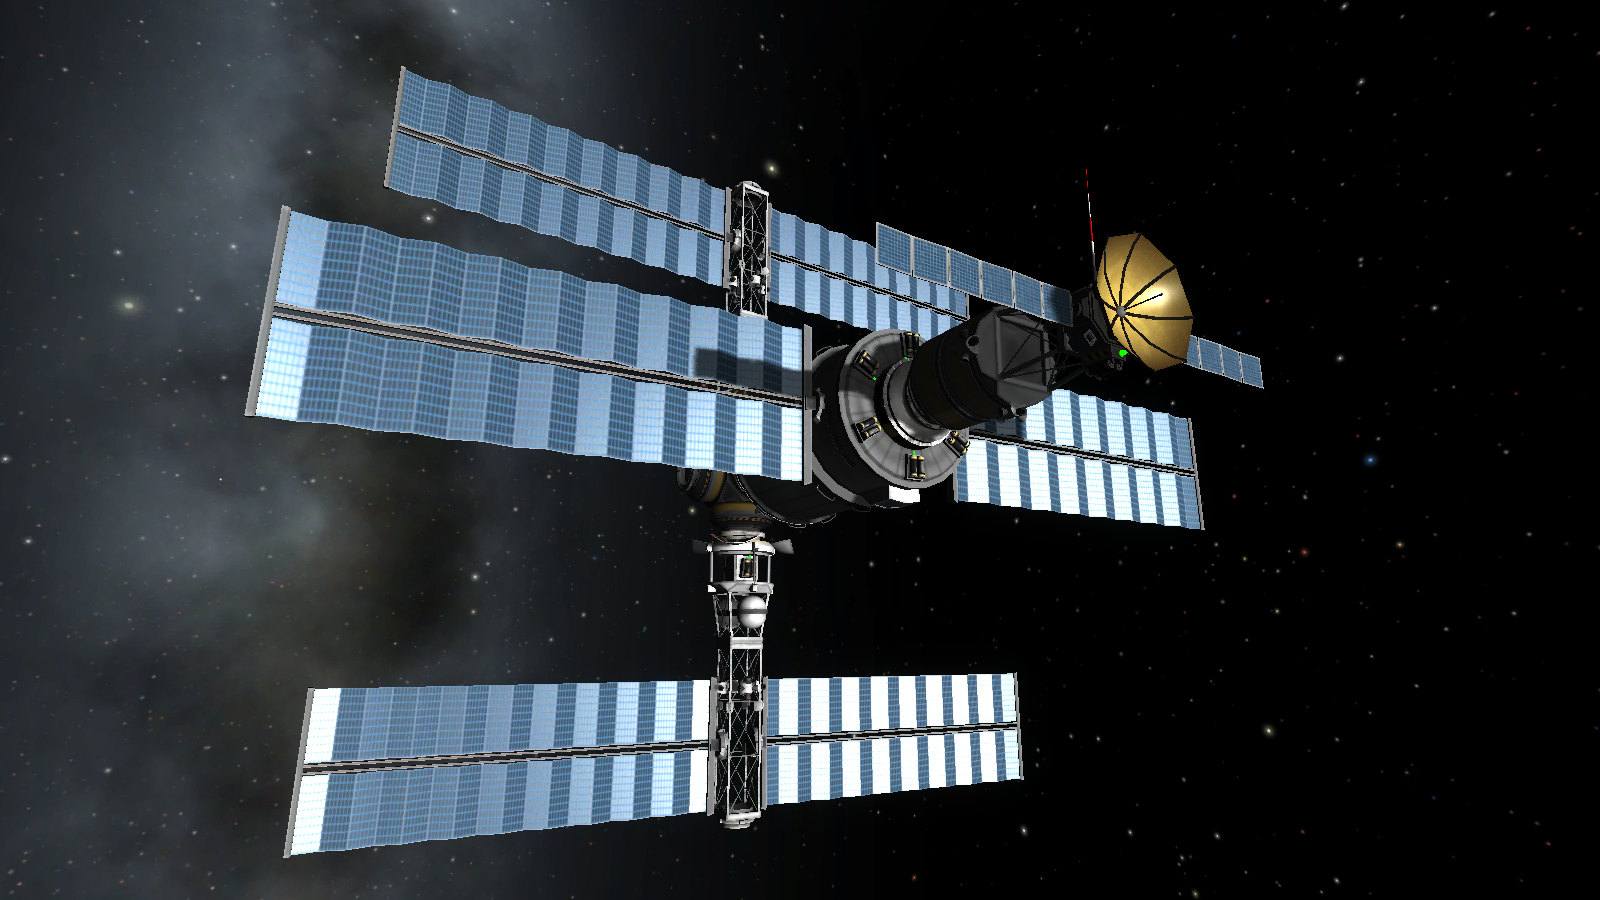 Space Station Basics: KSP 0 18 and Docking | Kerbal Space Program Blog